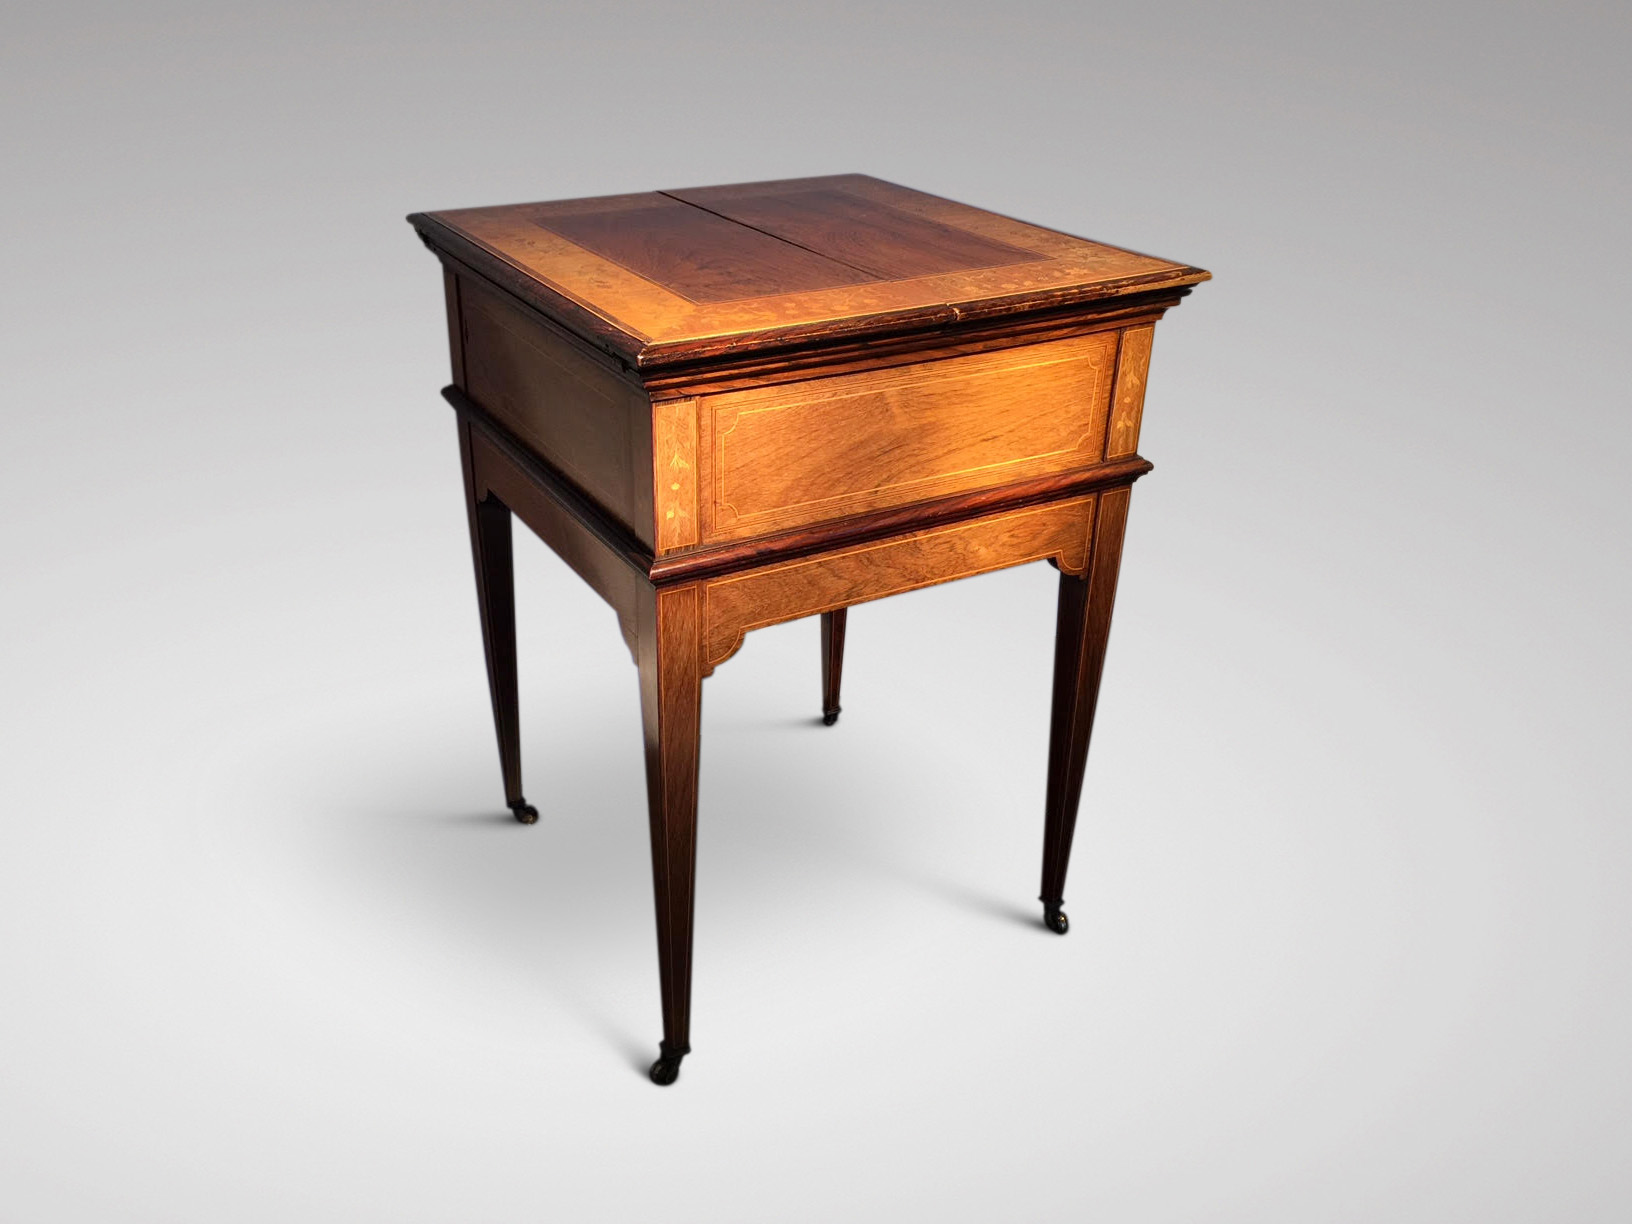 19C ROSEWOOD MARQUETRY HIDEAWAY BAR TABLE